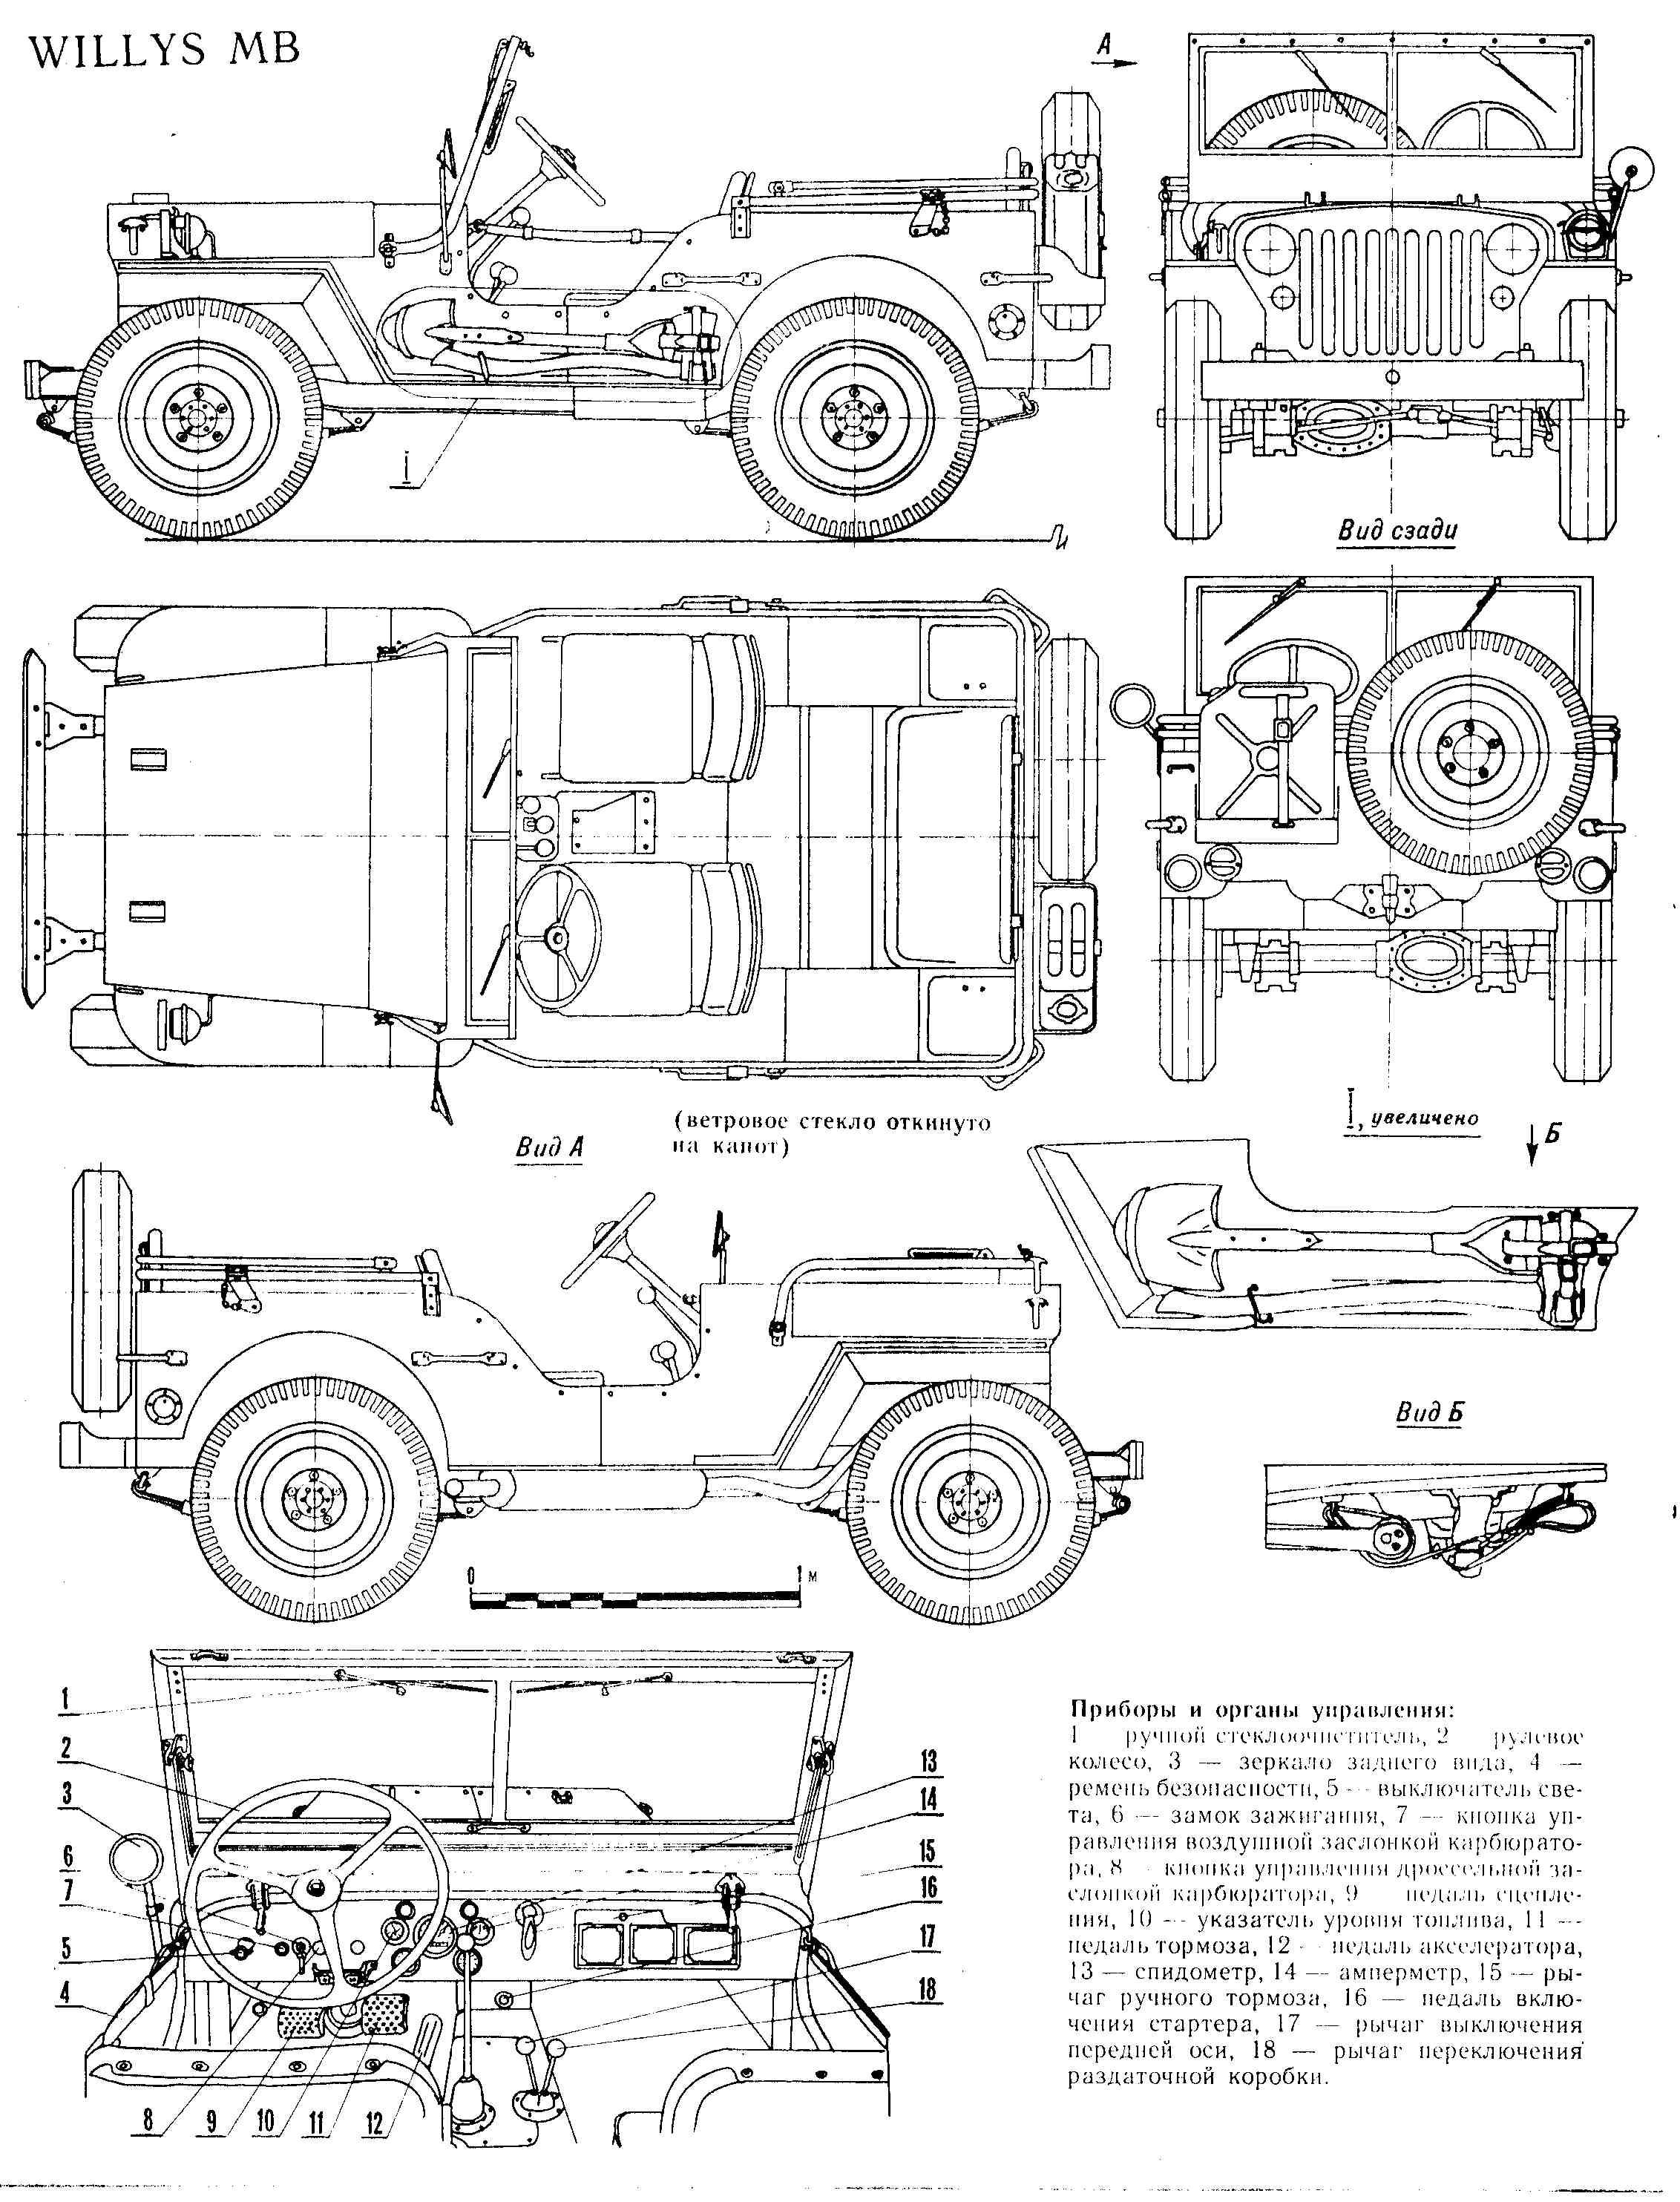 Jeep Willys Mb 45 1